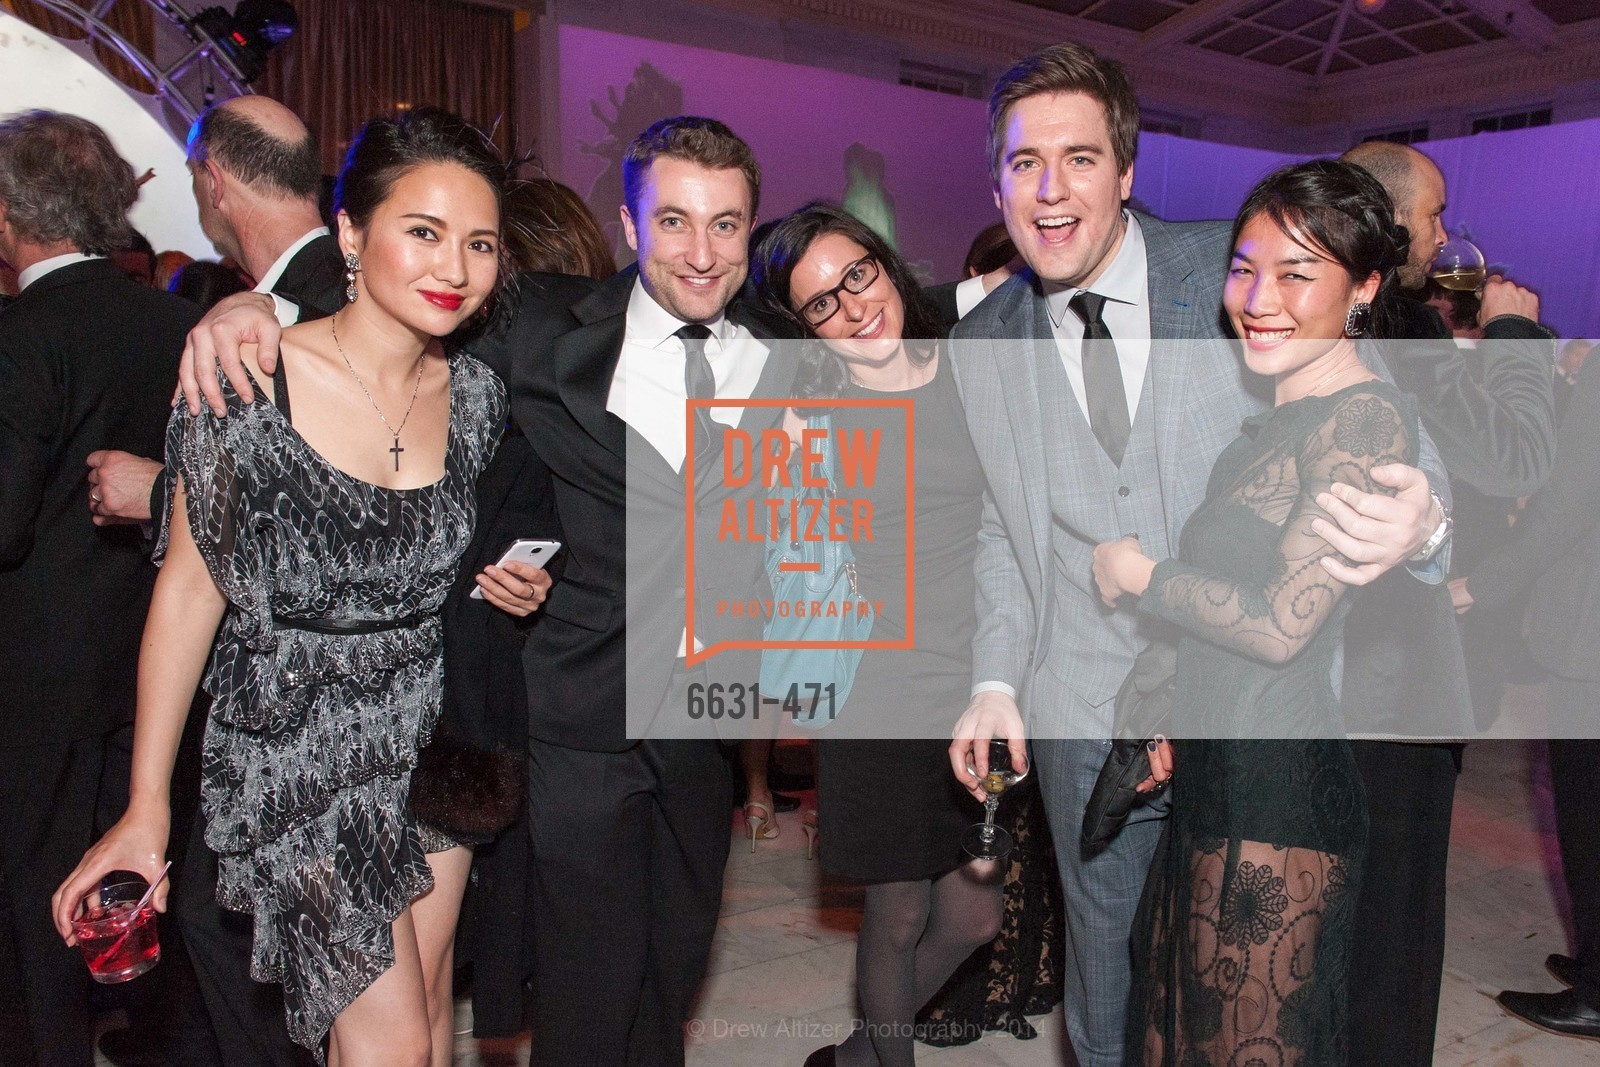 Mia Xu, James Ellott, David Fowler, Roxanne Lee, SAN FRANCISCO BALLET Opening Night Gala: PHENOMENAL - After Party, US. War memorial opera house, January 22nd, 2014,Drew Altizer, Drew Altizer Photography, full-service agency, private events, San Francisco photographer, photographer california